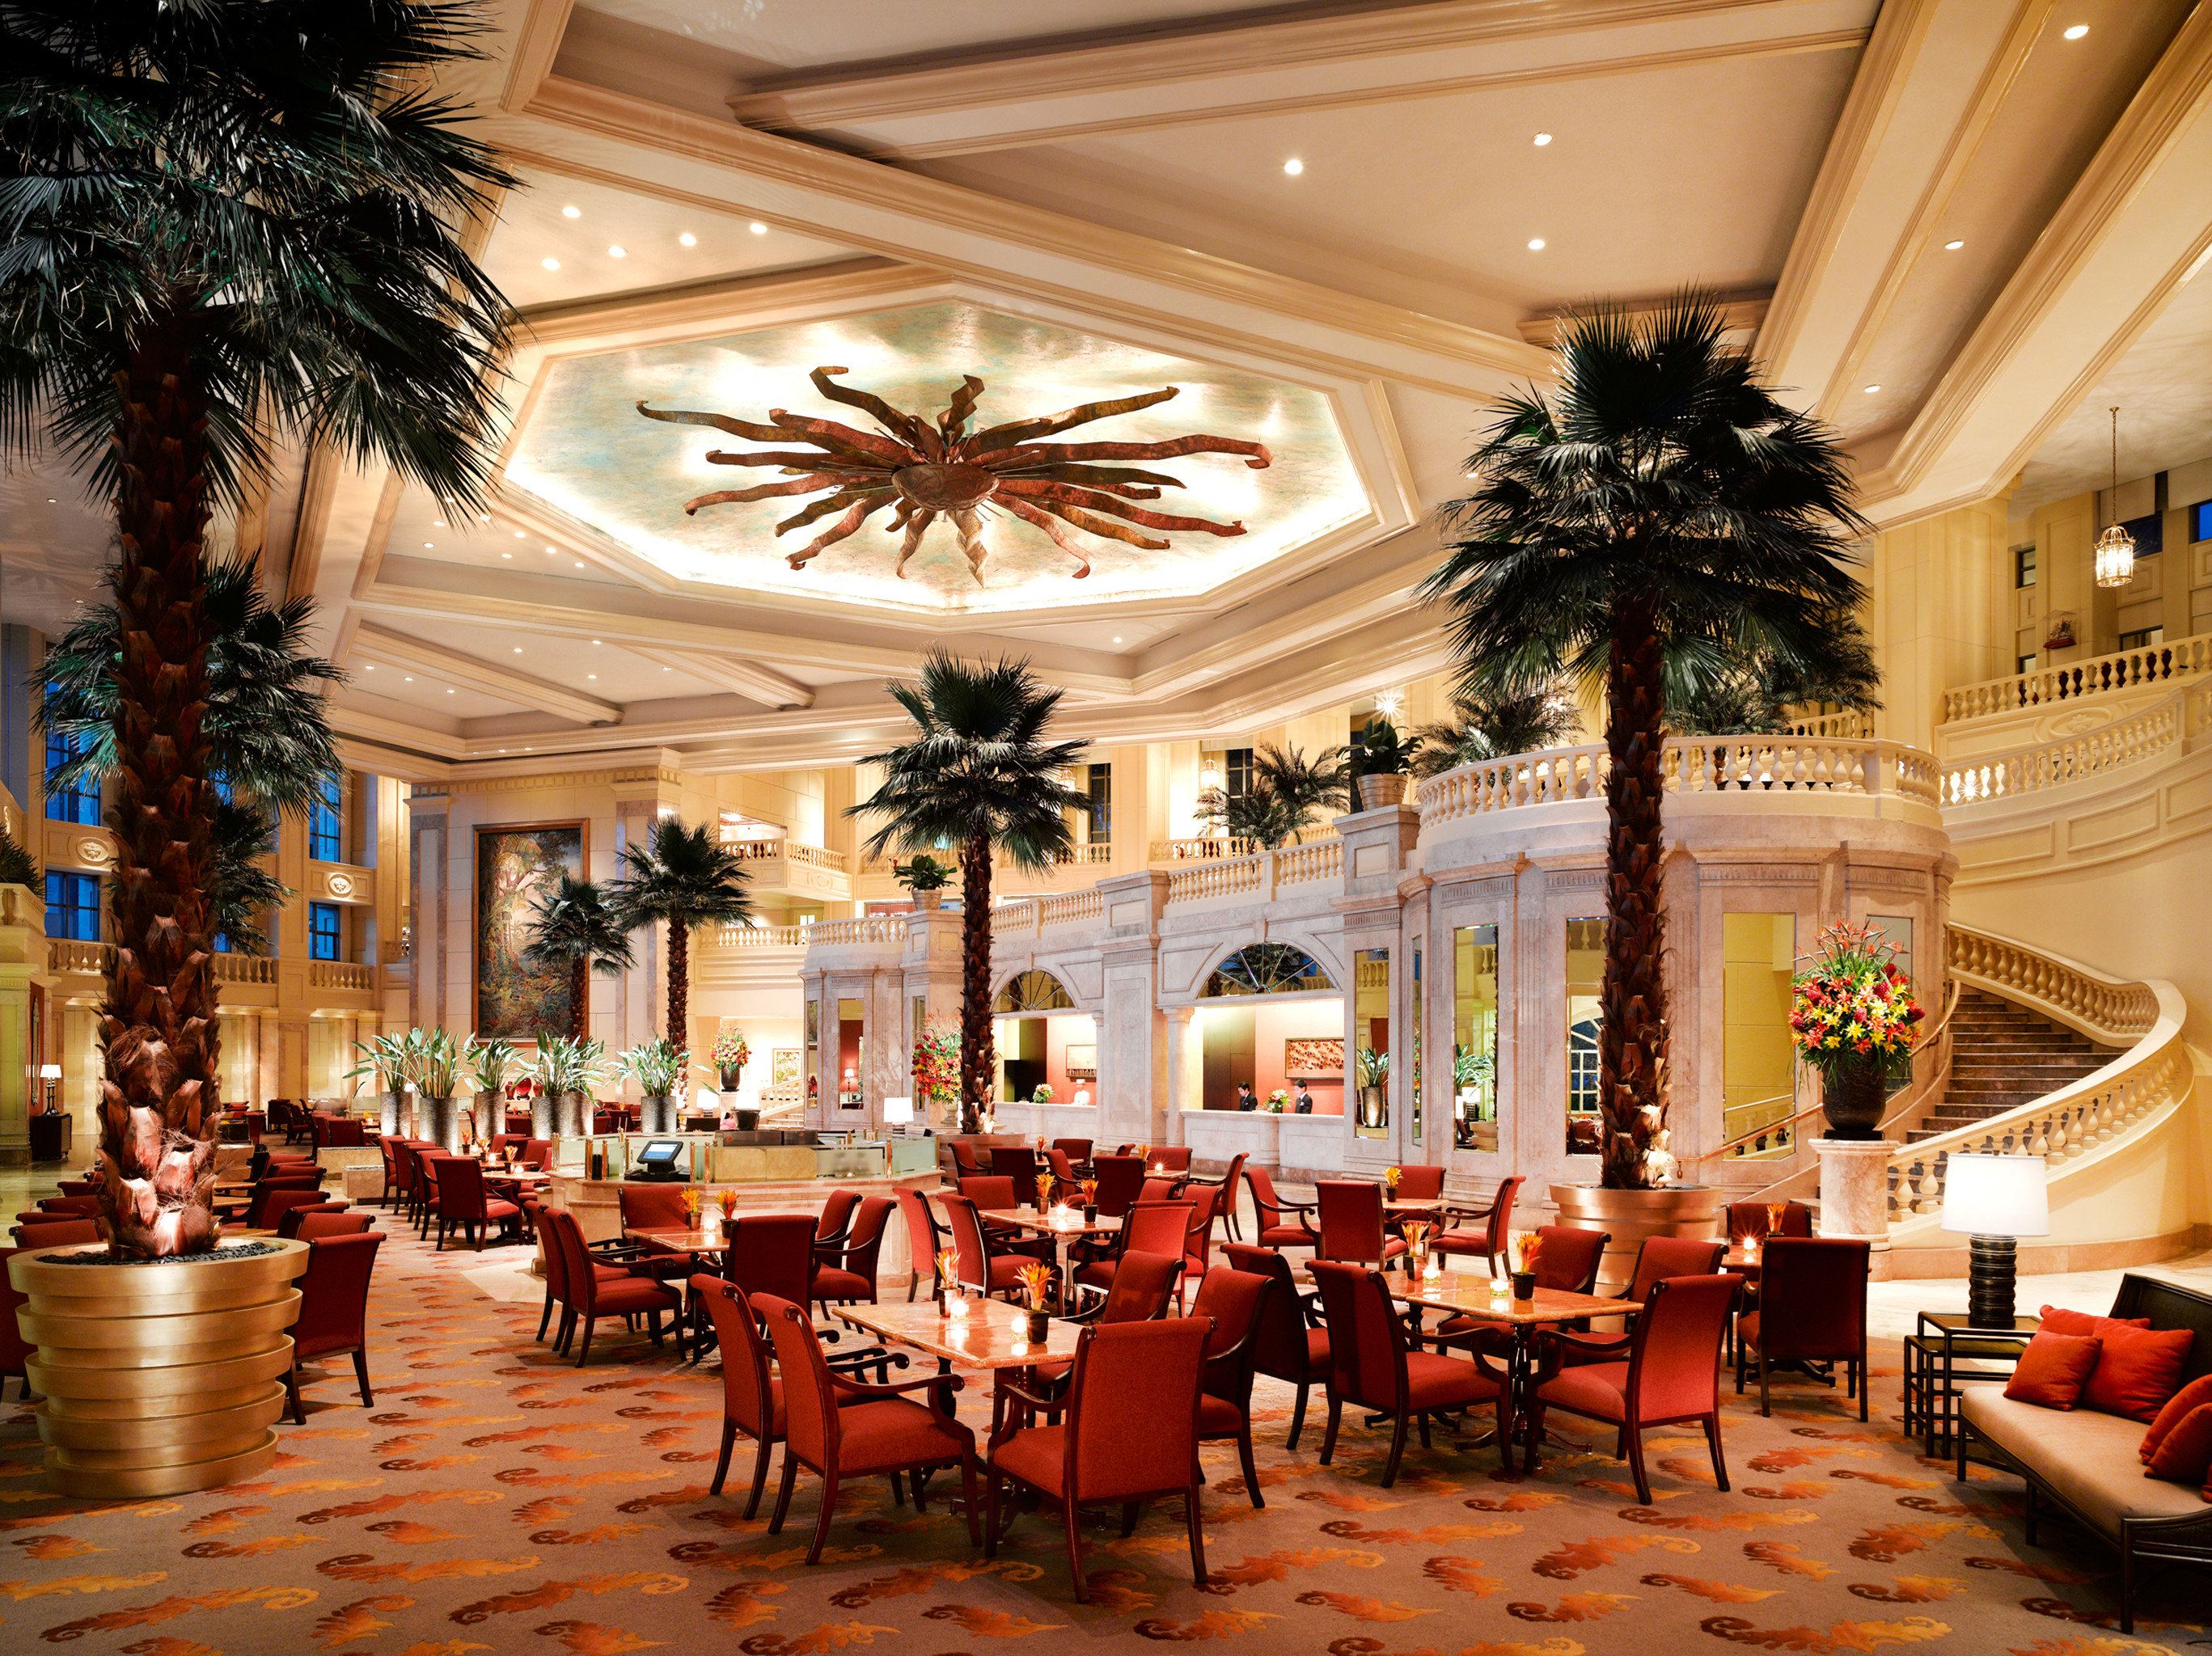 Lobby Lounge Luxury Resort chair function hall Dining palace ballroom restaurant convention center set surrounded